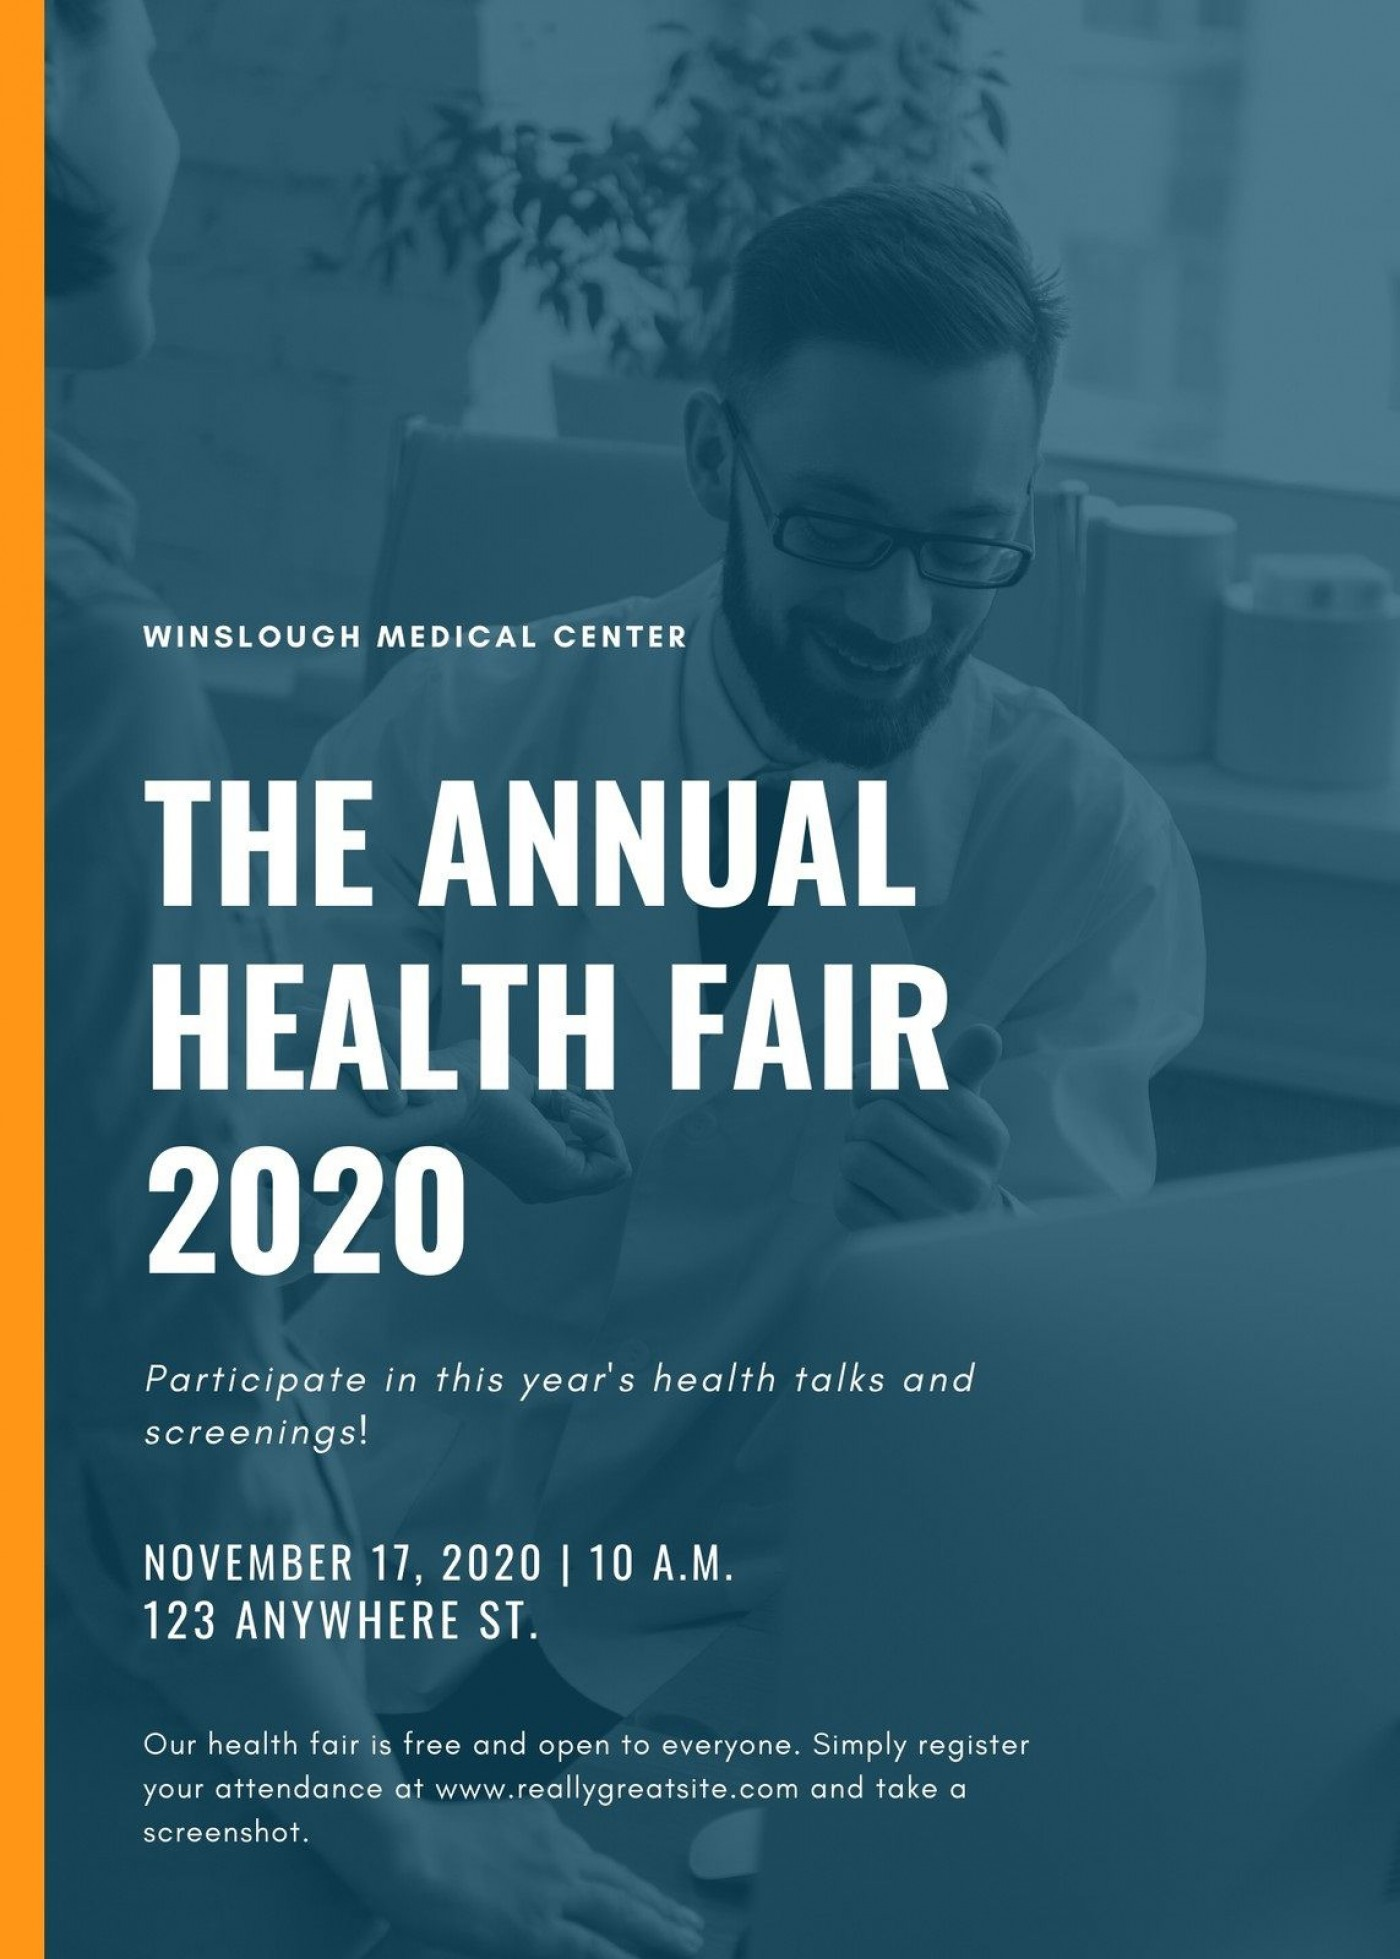 007 Phenomenal Health Fair Flyer Template High Definition  And Wellnes Word1400